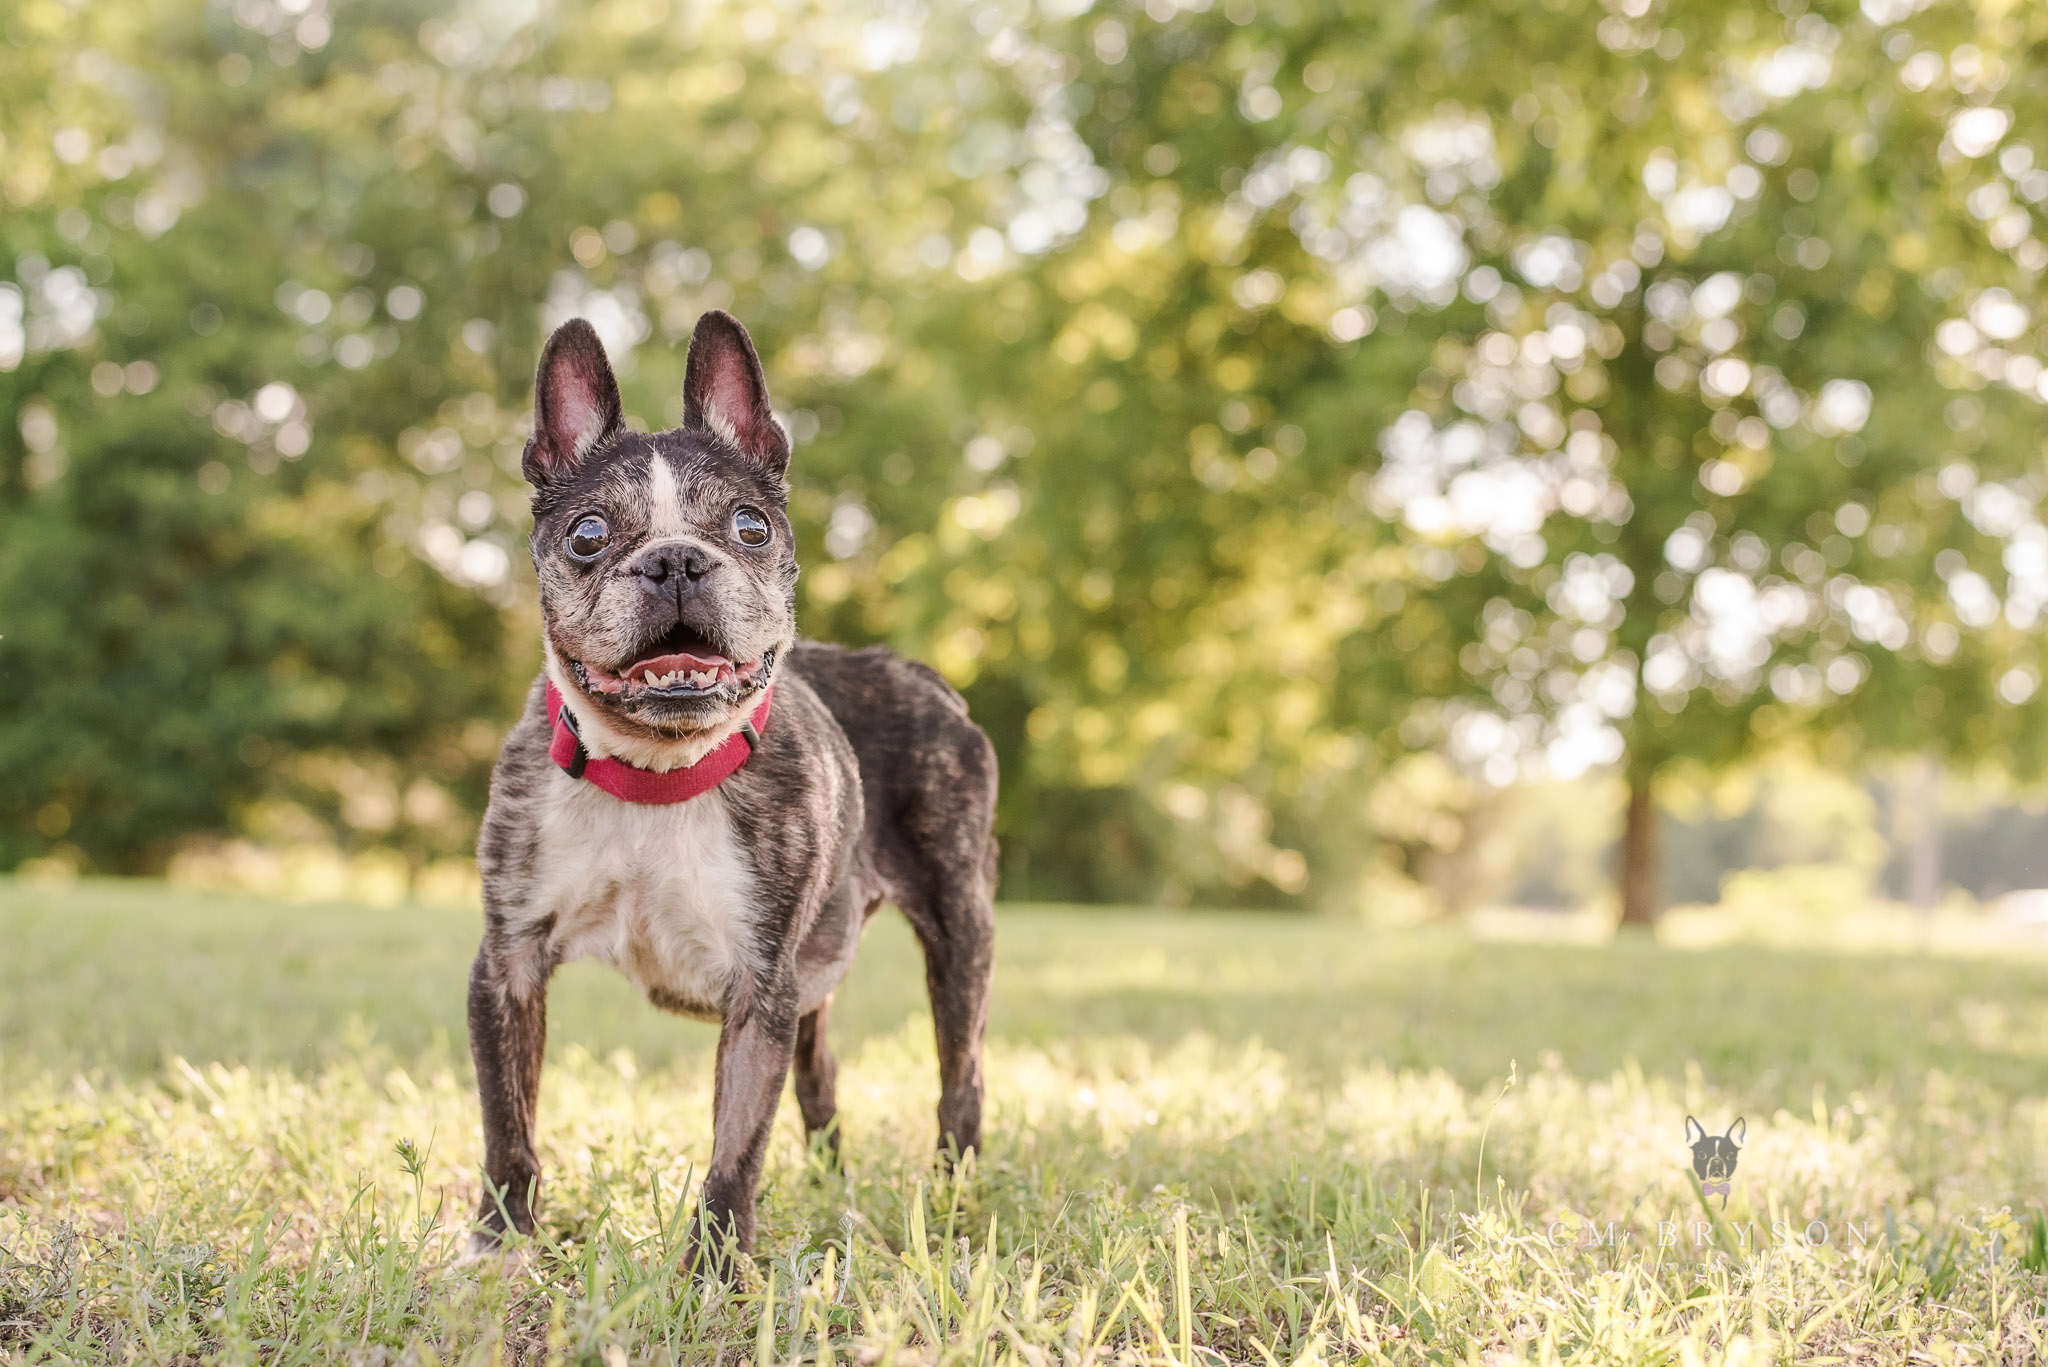 Professional pet photography allows you to preserve and remember the relationships you share with your senior dogs.